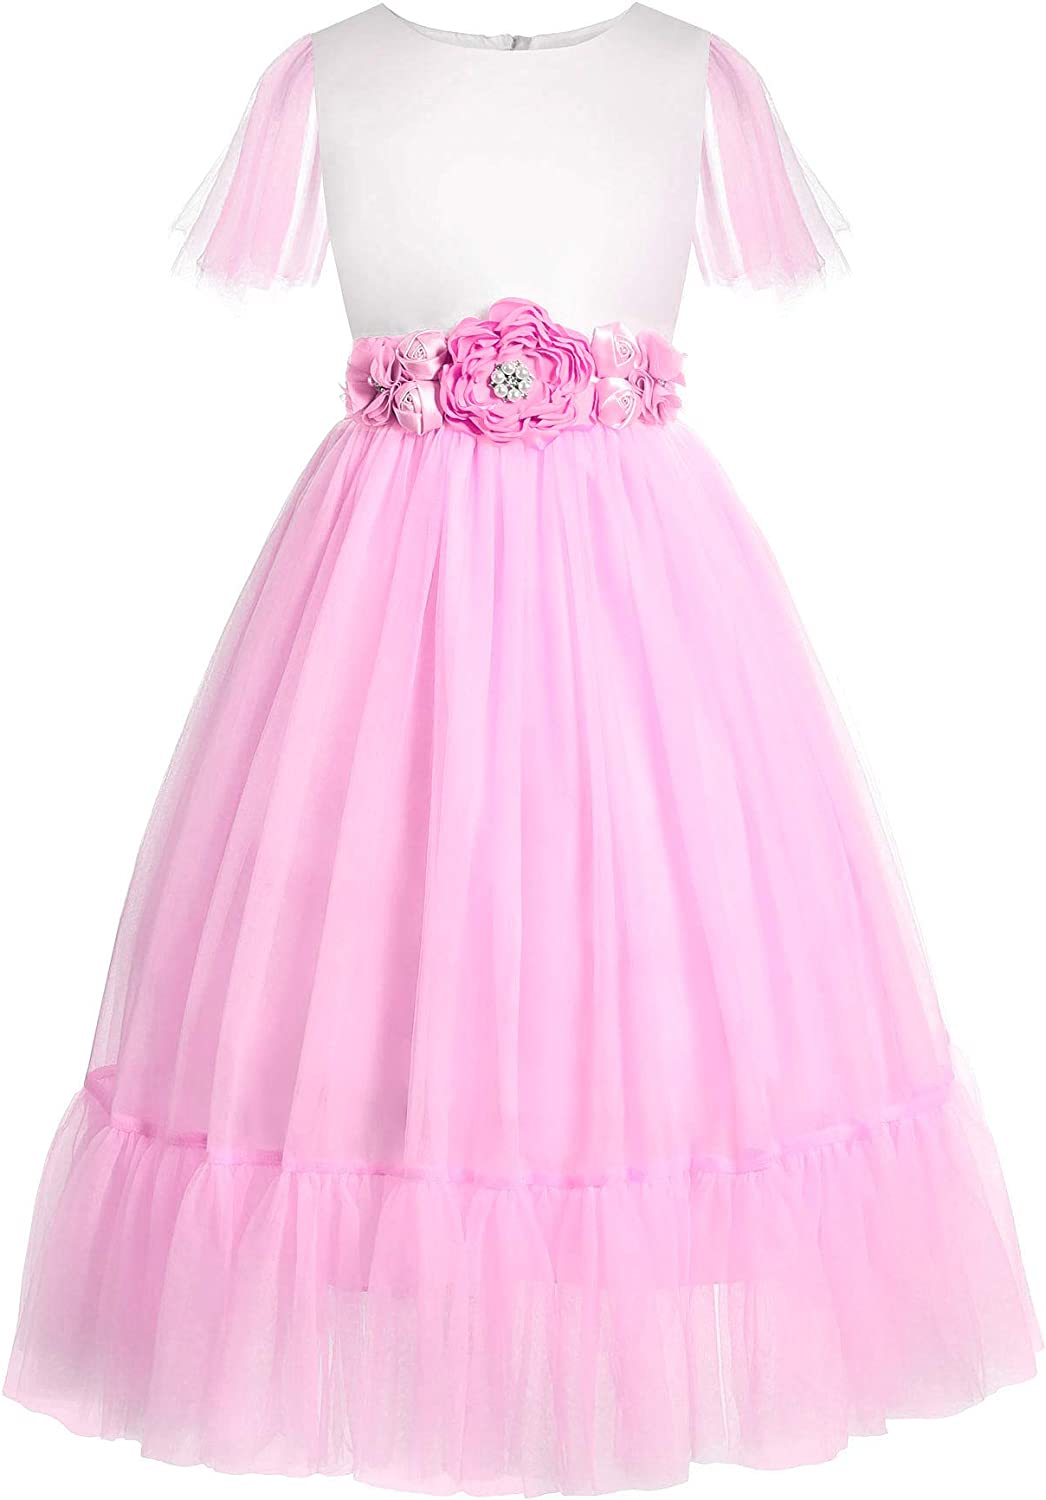 ReliBeauty Wedding Flower Girl Dress Baby A-Line Layered Tulle Tutu